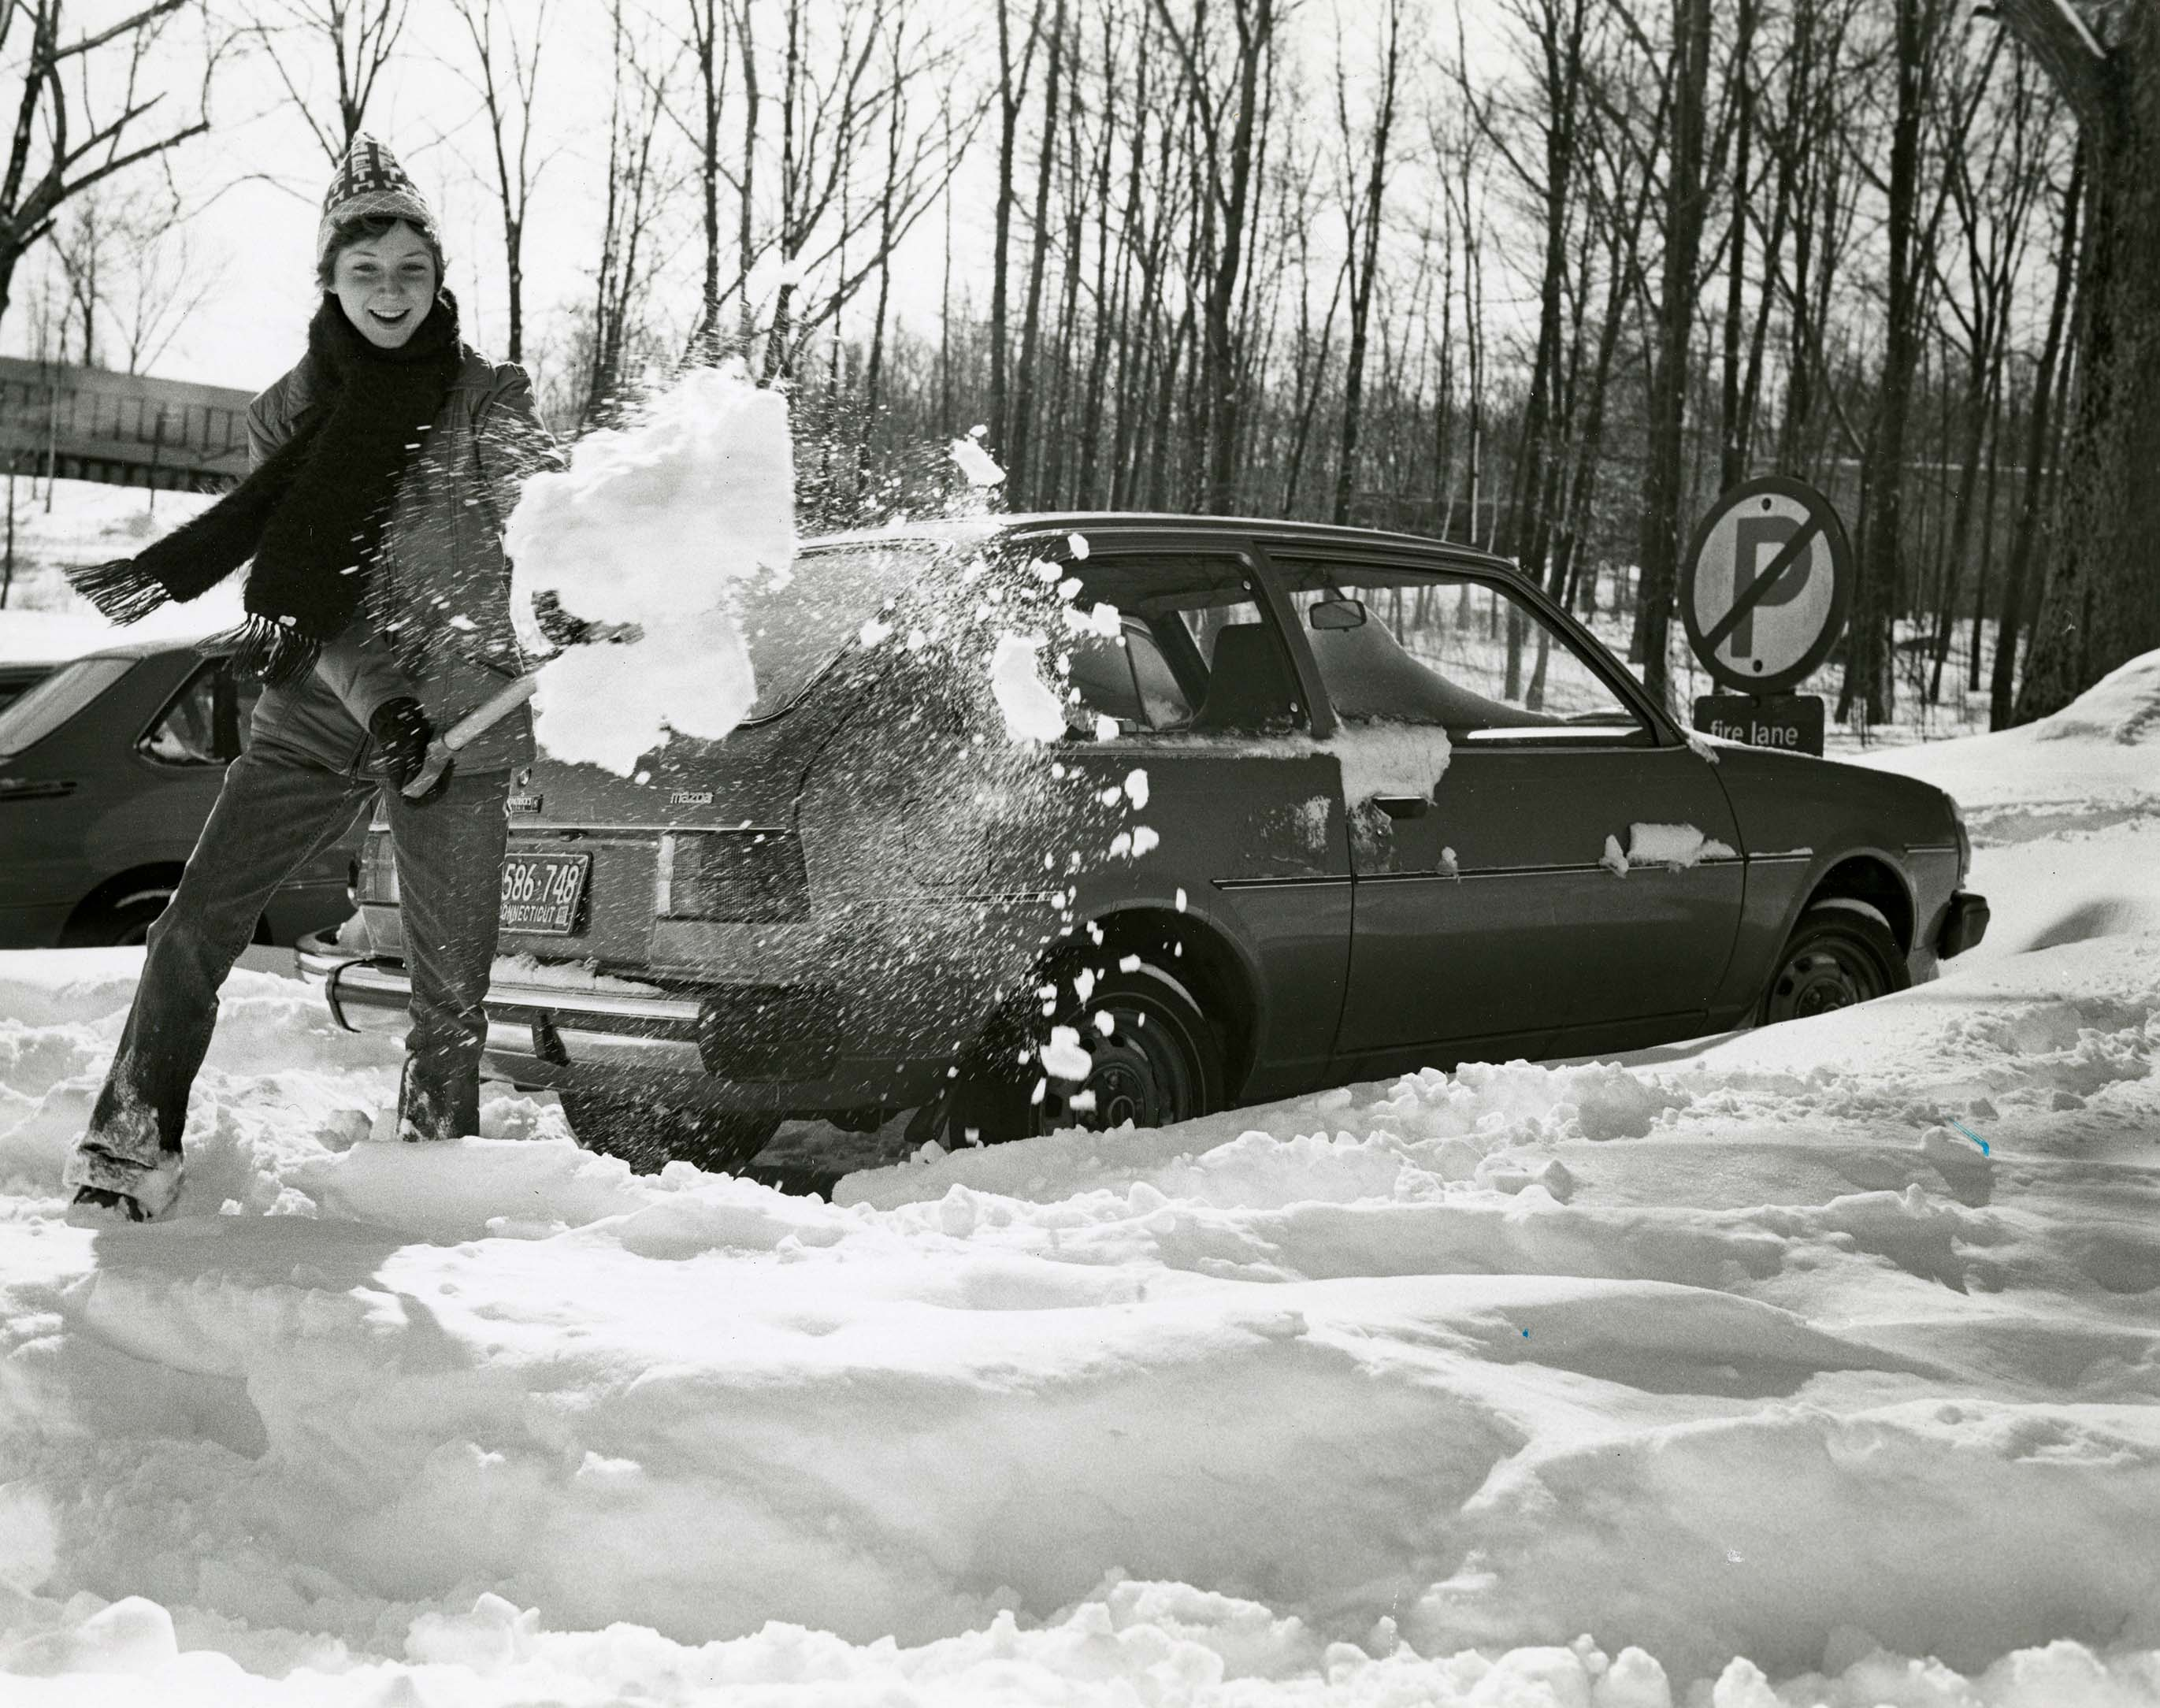 UConn student shoveling snow on the Storrs campus, 1978